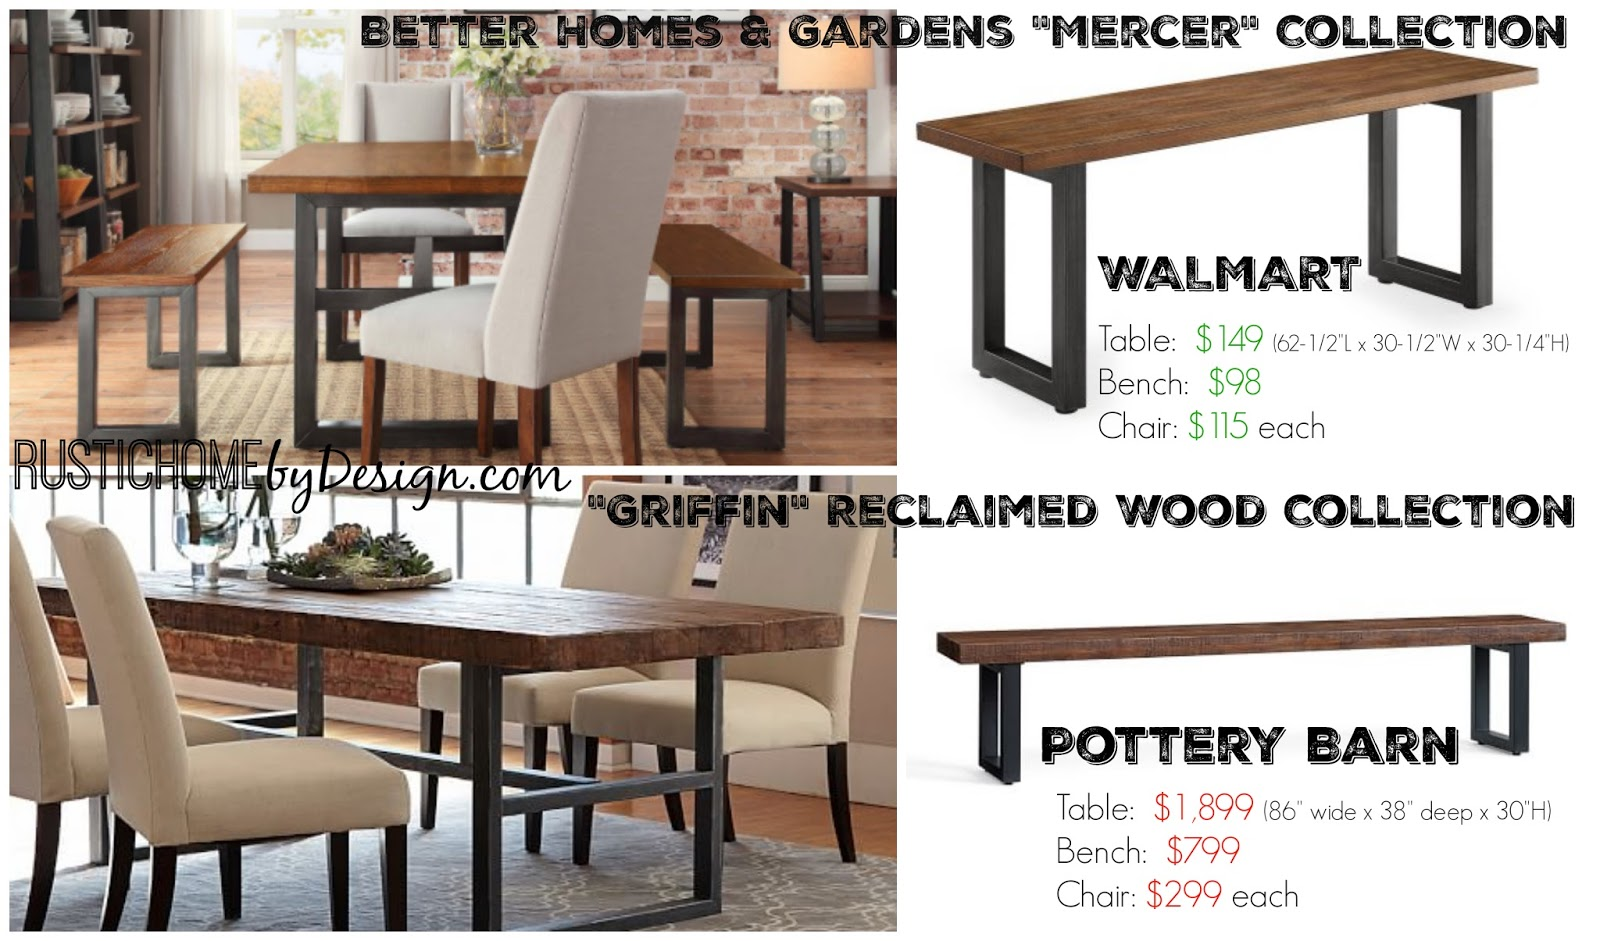 Rustic Home By Design Pottery Barn Style On A Walmart Budget